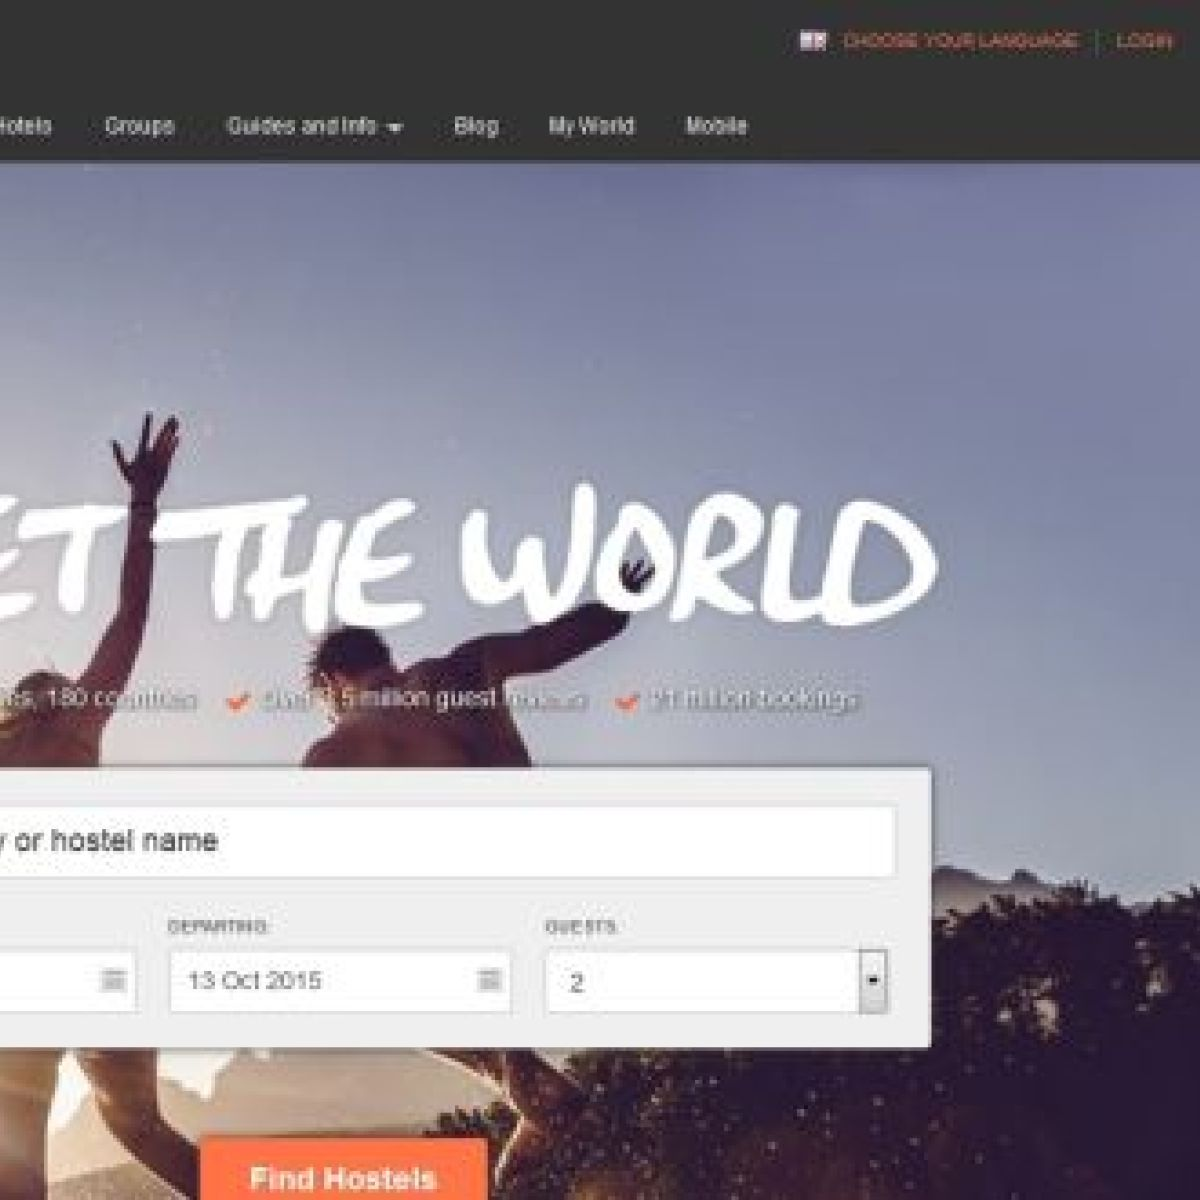 Hostelworld raises €180m in IPO as shares begin trading in Dublin